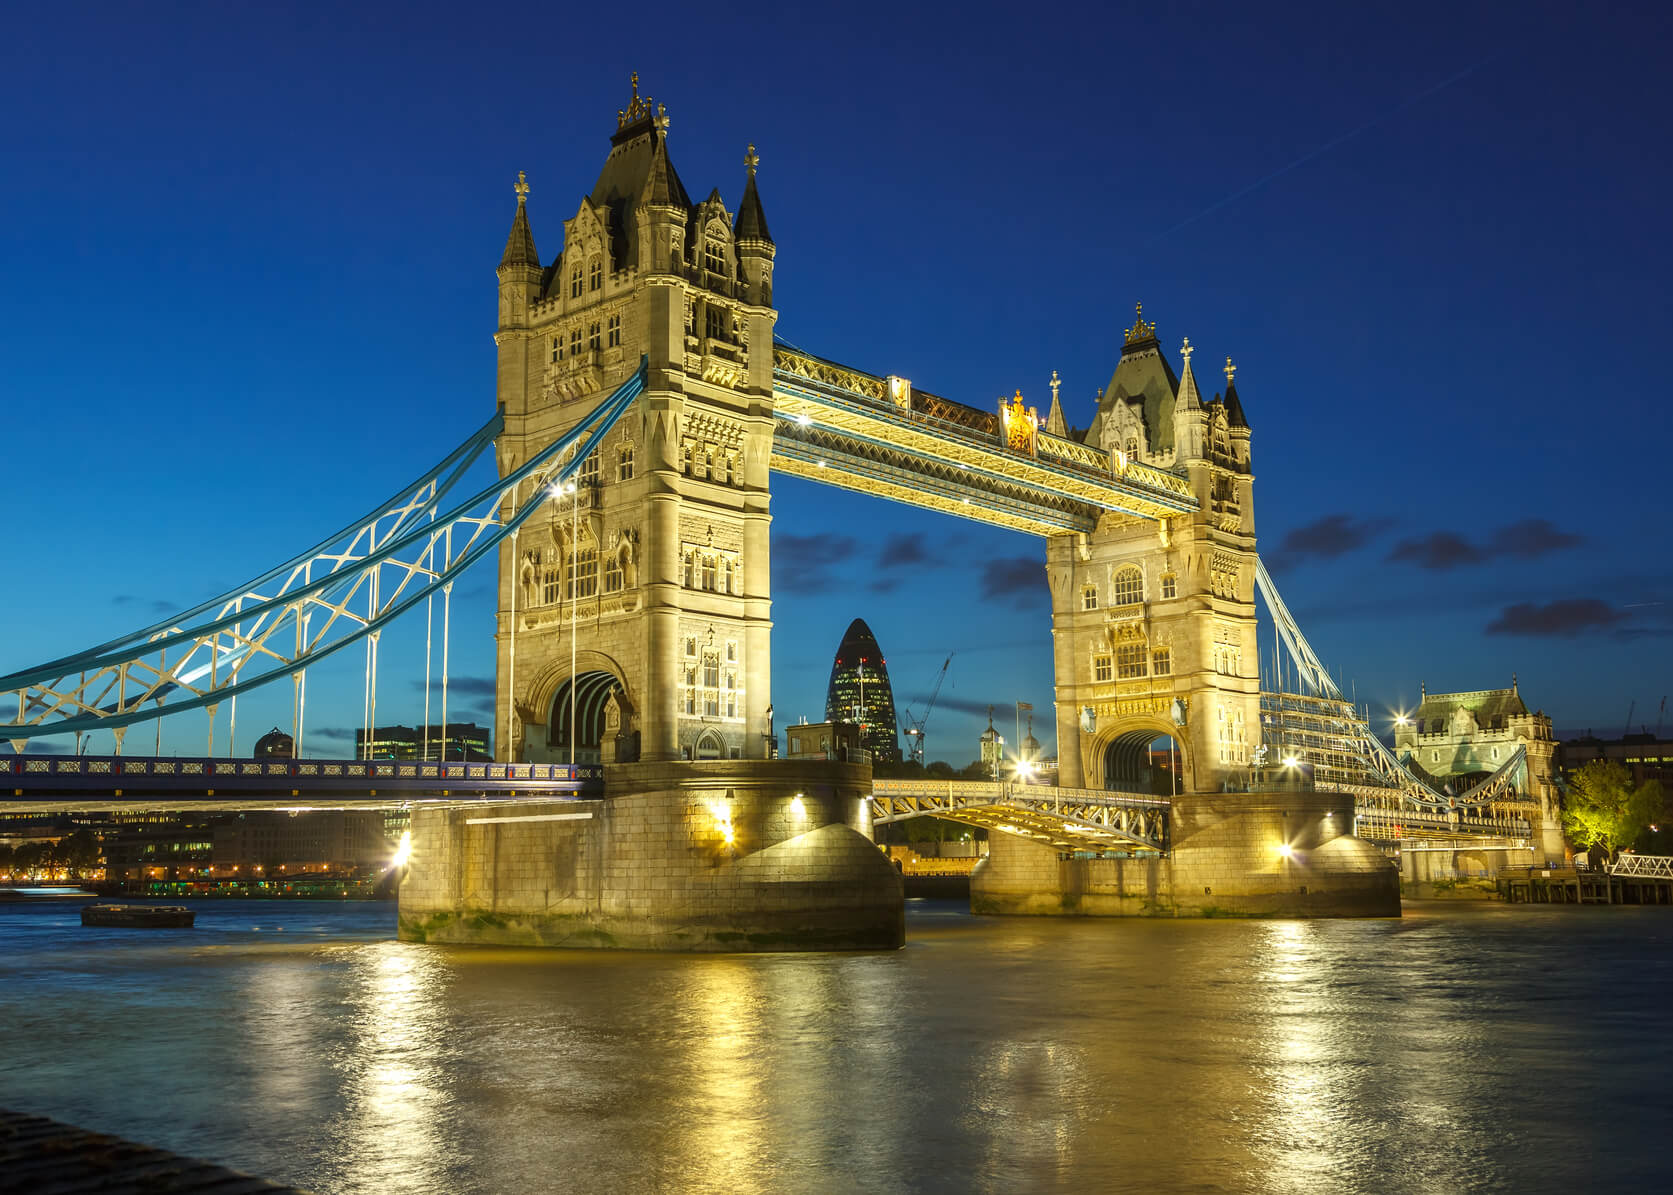 HOT!! New York to London, UK for only $236 roundtrip (Nov-Mar dates)